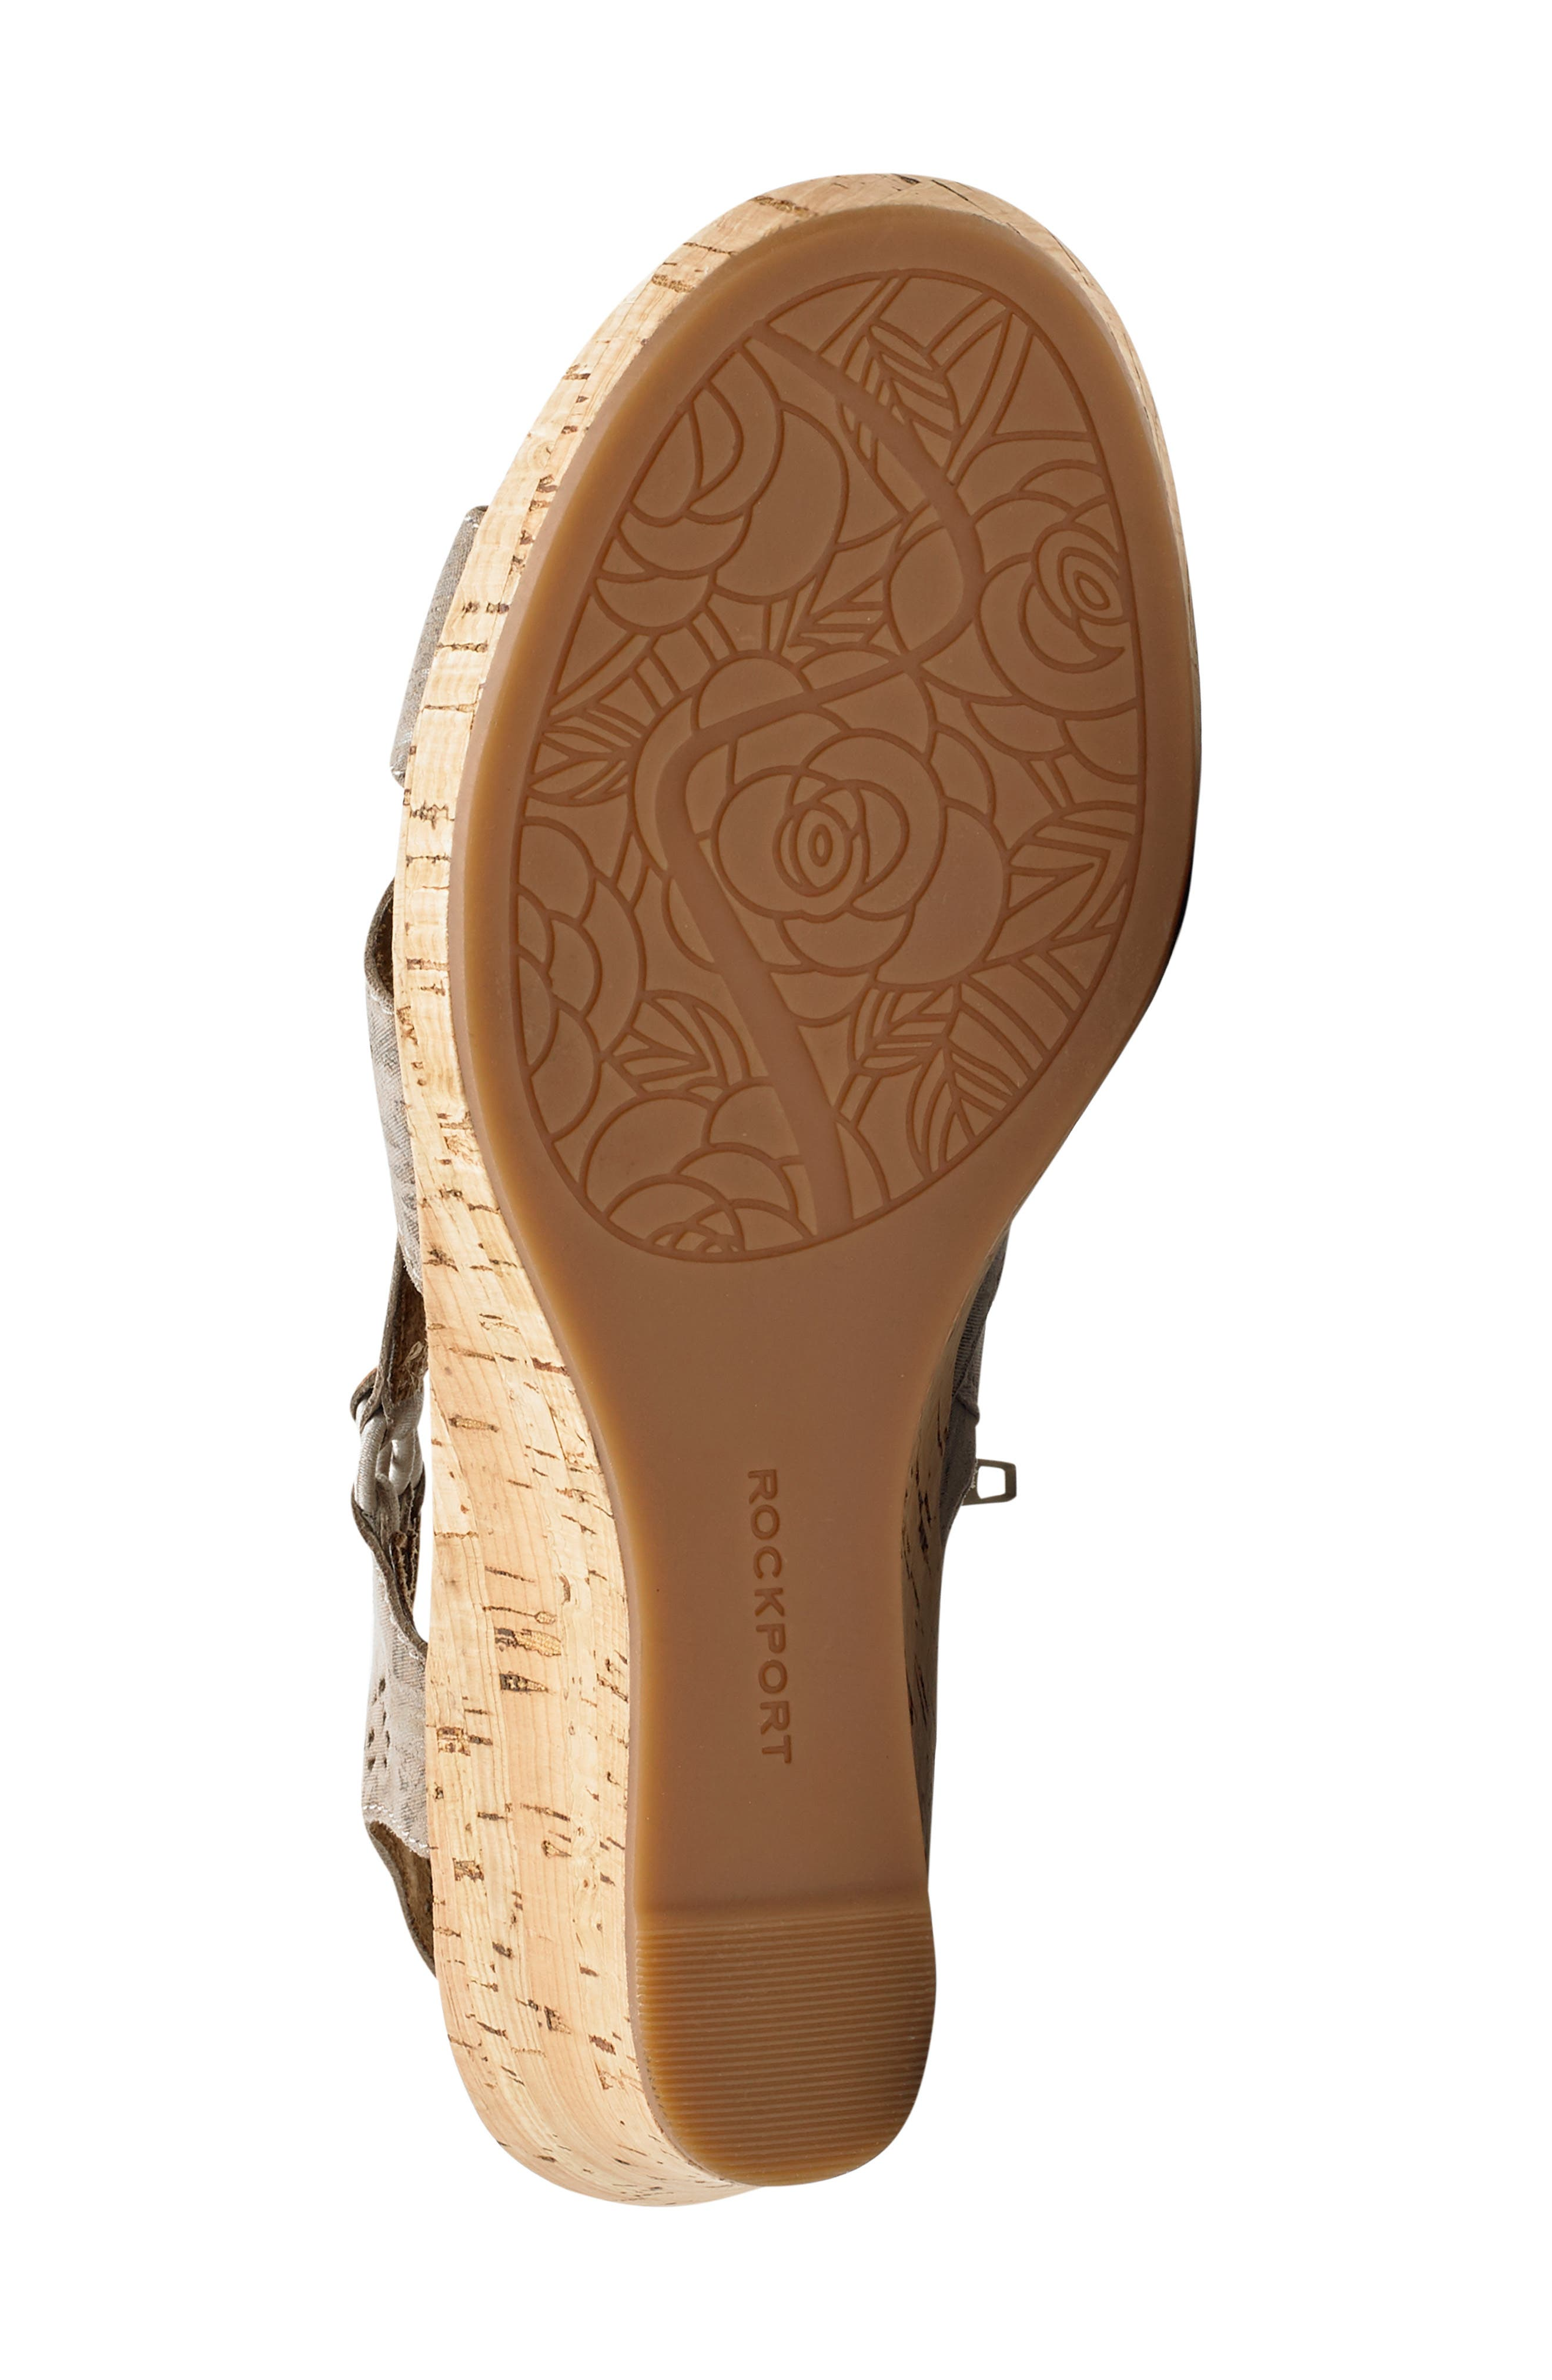 ROCKPORT COBB HILL, Janna Perforated Wedge Sandal, Alternate thumbnail 6, color, FLORAL METALLIC LEATHER